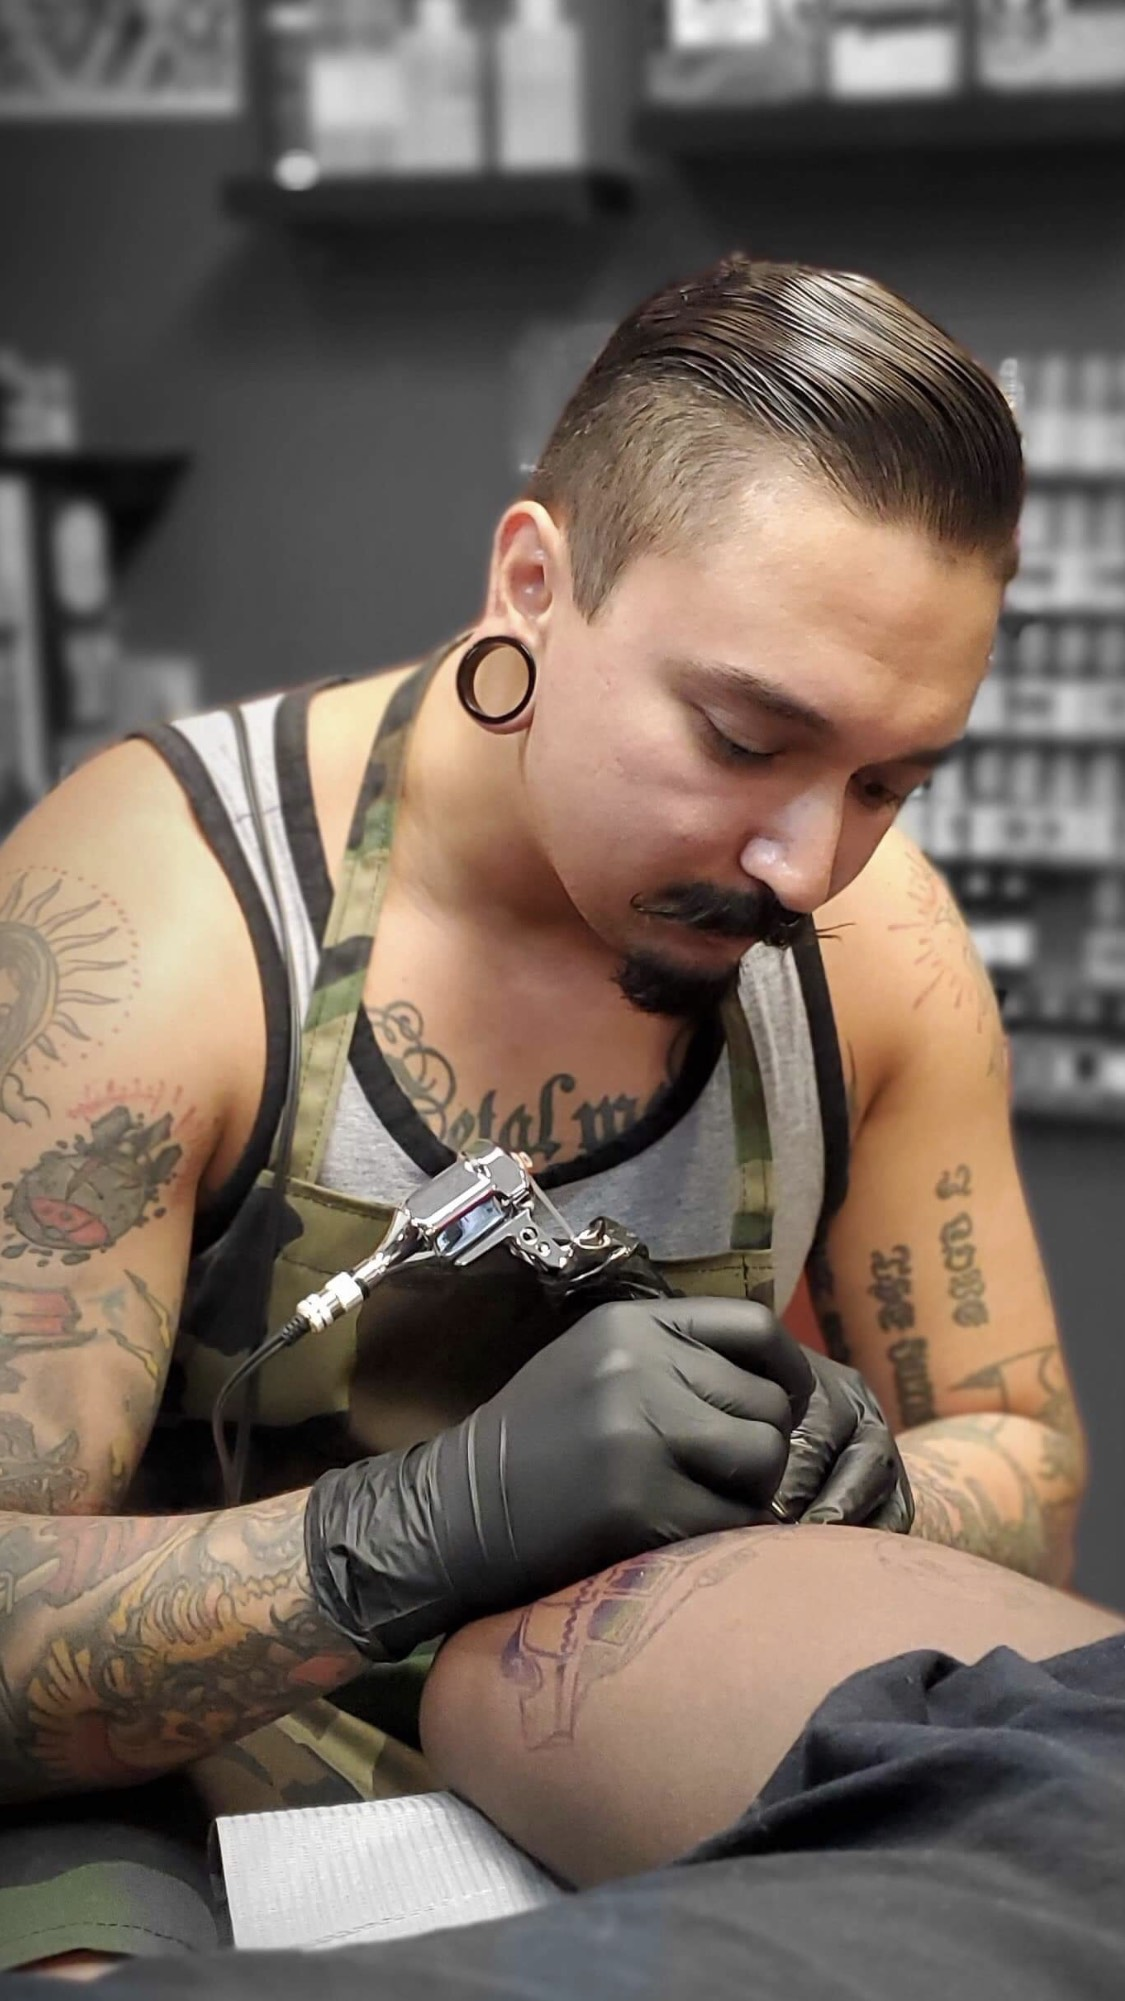 Joel Macias - Joel has been tattooing for 6 years. He is a well known artist for black and grey, geometric as well as traditional. Although these are some of his specialties he is multitalented in all styles. Located in Hope Mills, NC. Click his picture to check out his work.